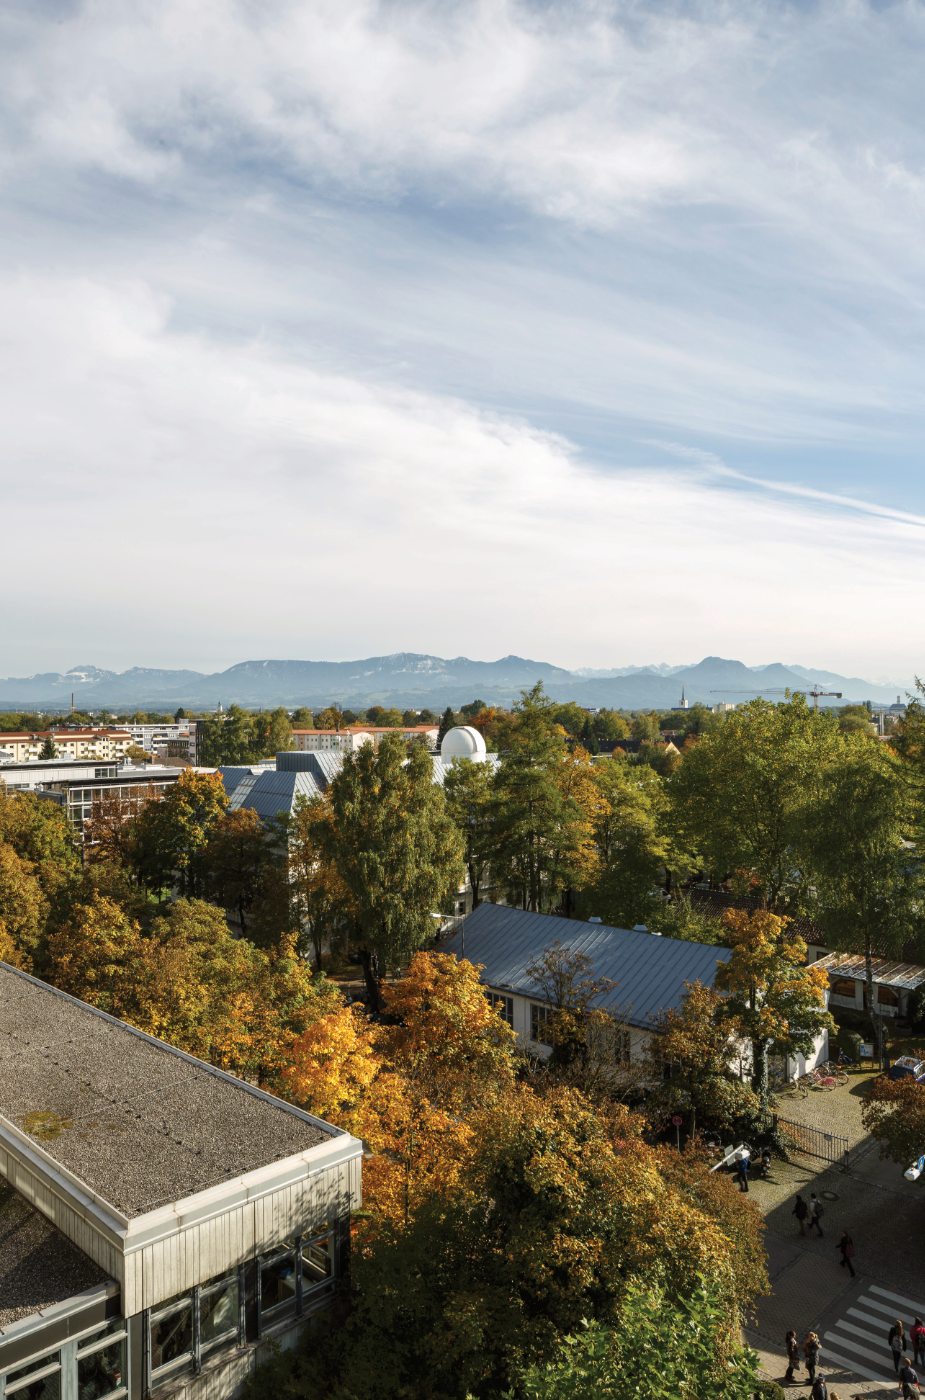 picture from above the Rosenheim Technical Univercity of applied scienes, showing a beautiful view with many trees an the mountains in the backround